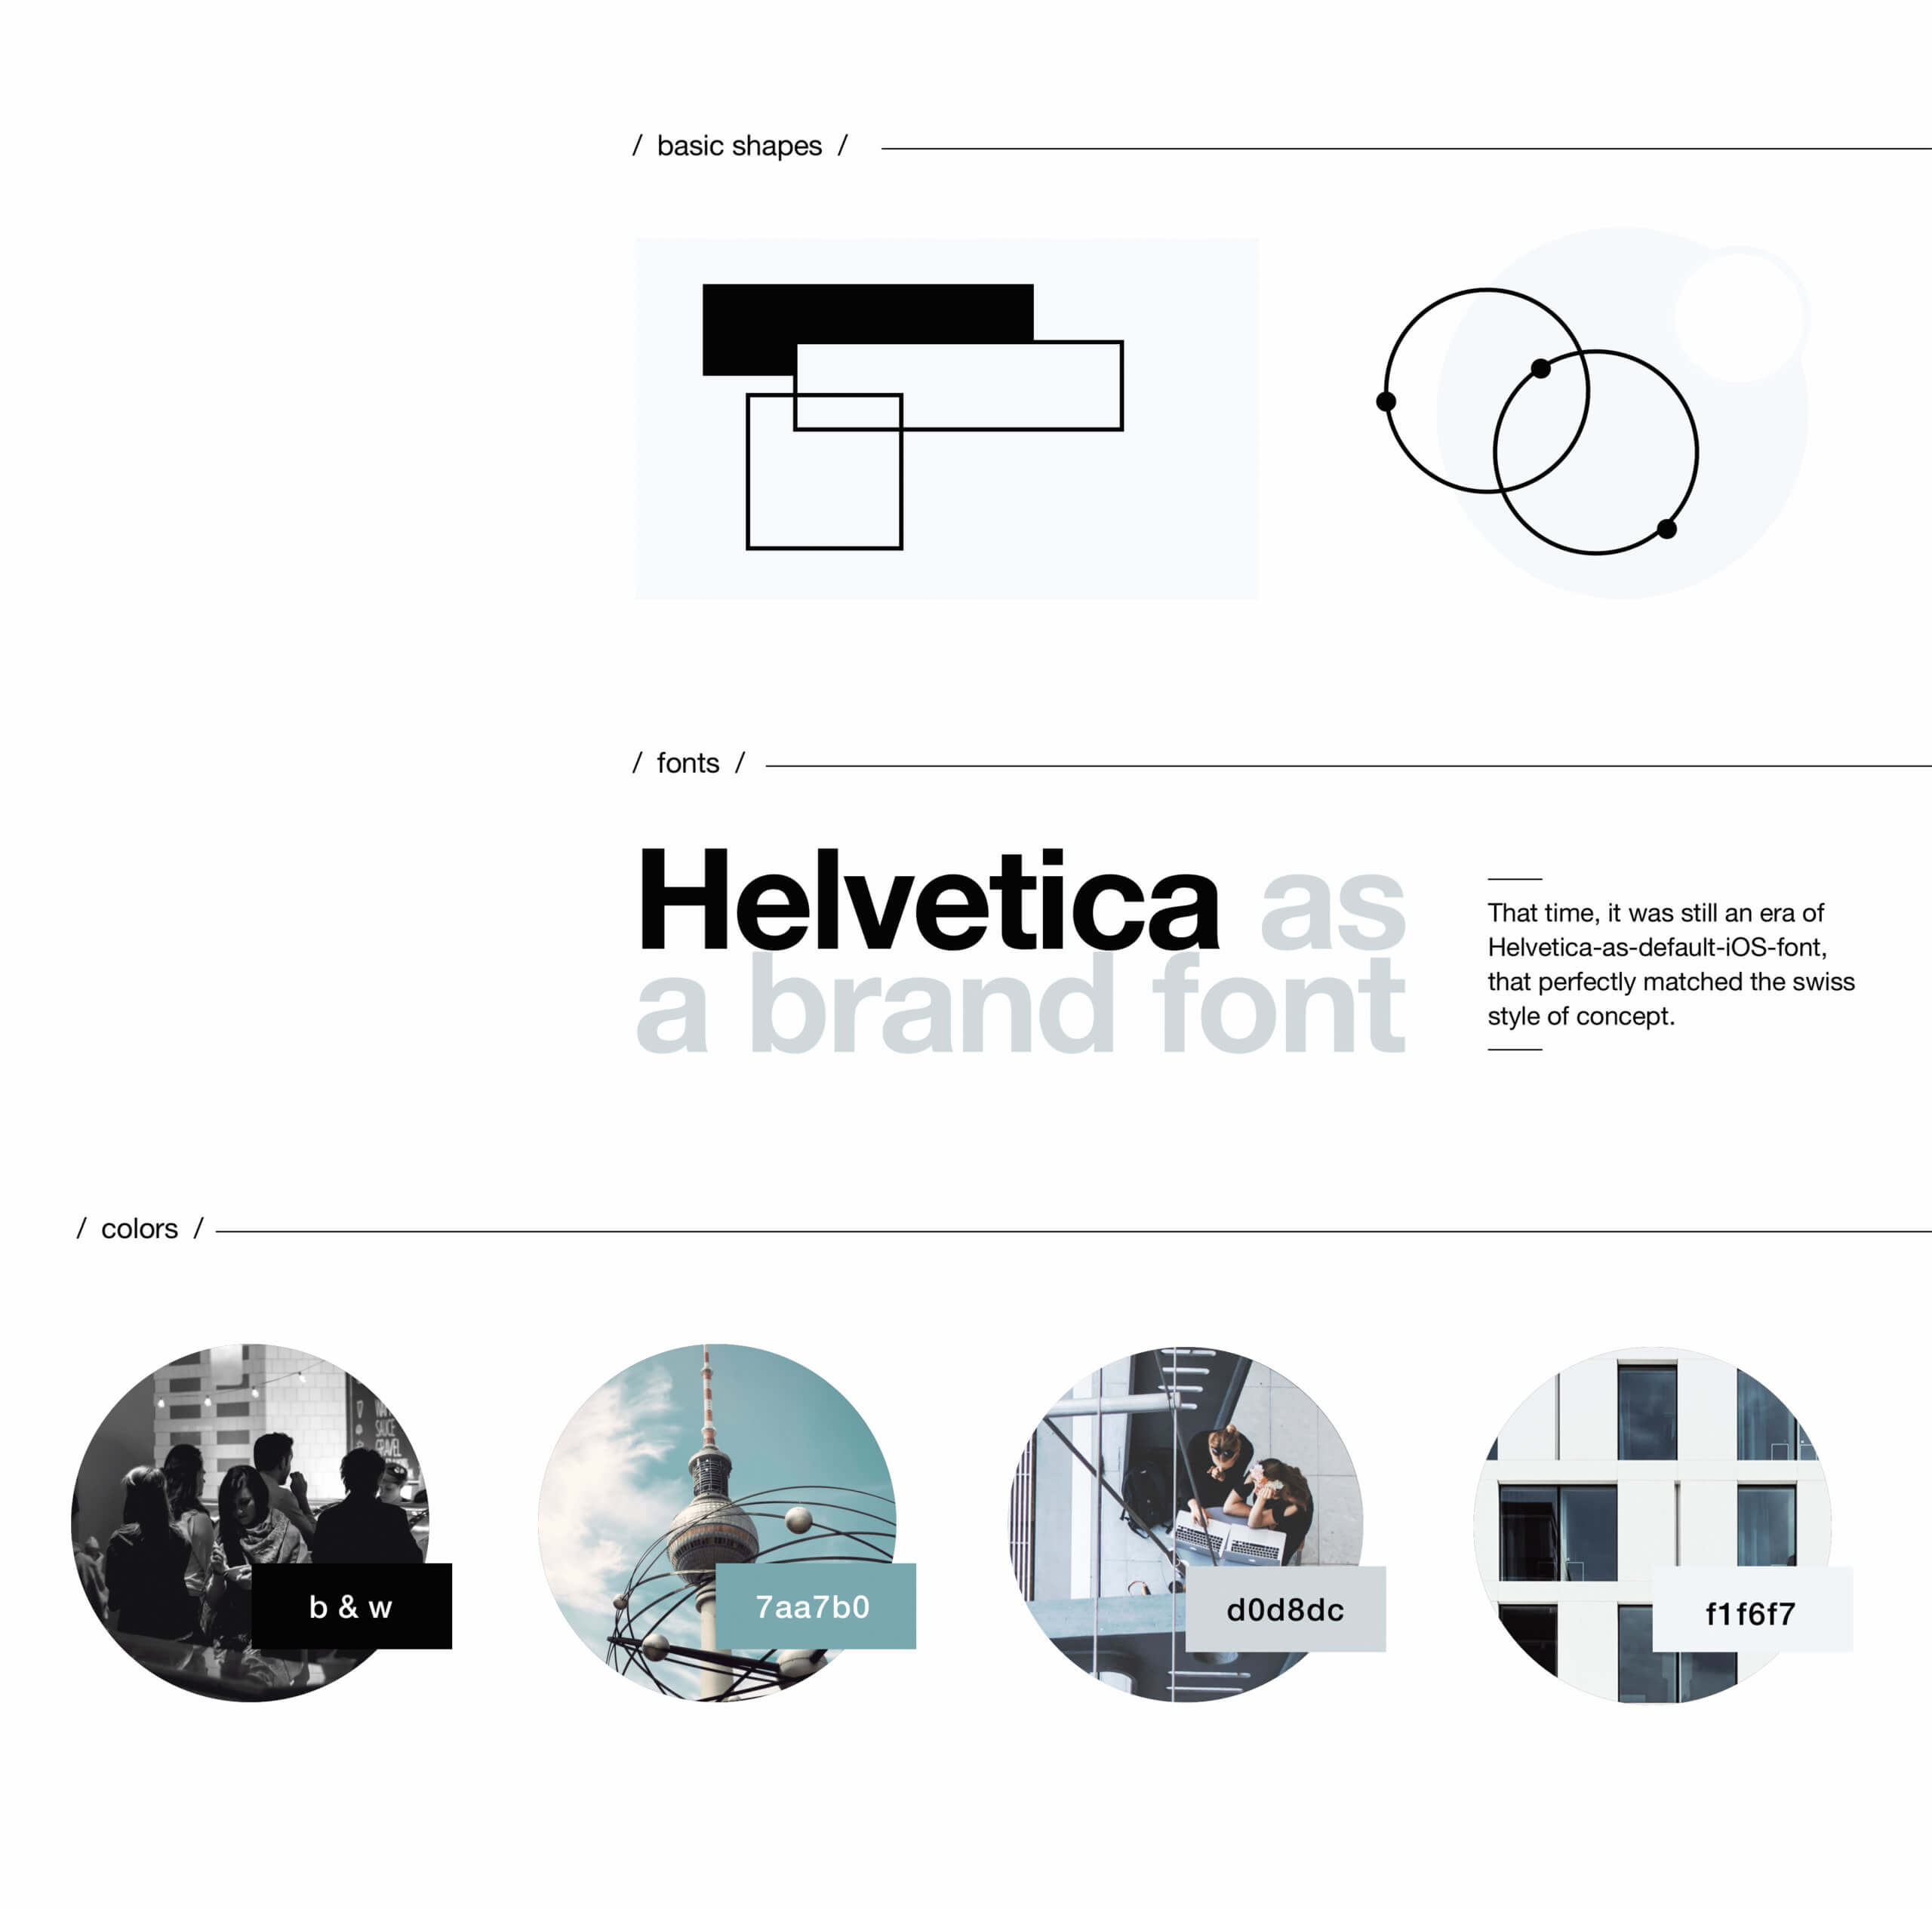 co-working space brand foundation based on Helvetica Nezhynska